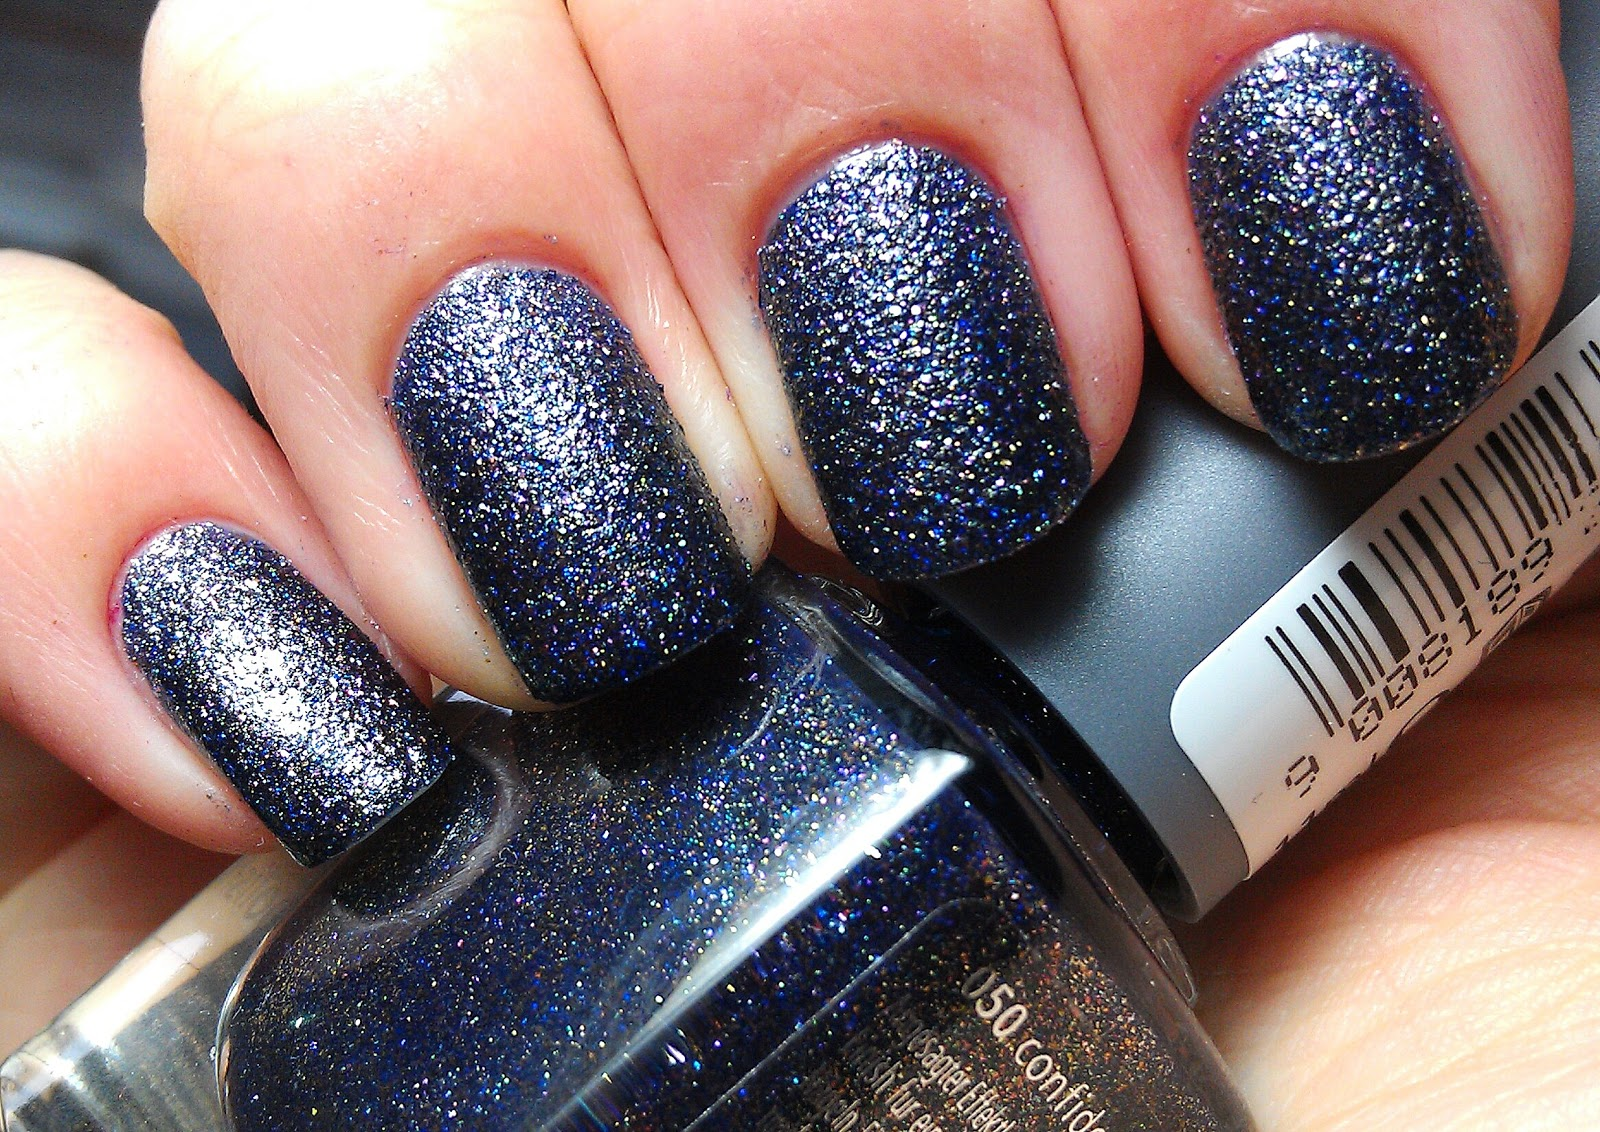 nailartinc: P2 SAND STYLE NAIL POLISHES + SWATCHES OF 050 CONFIDENTIAL